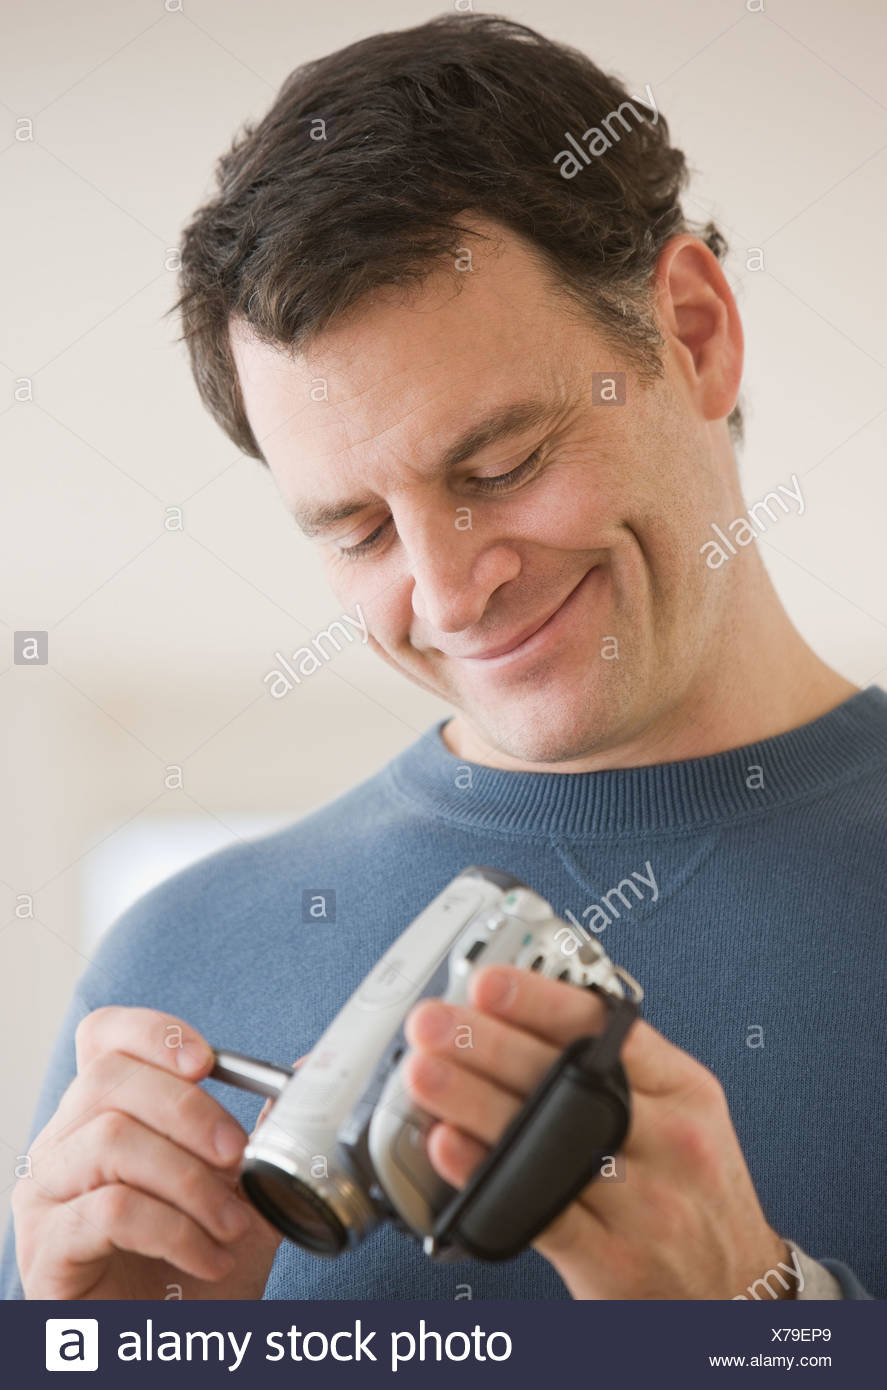 Man looking at video camera - Stock Image